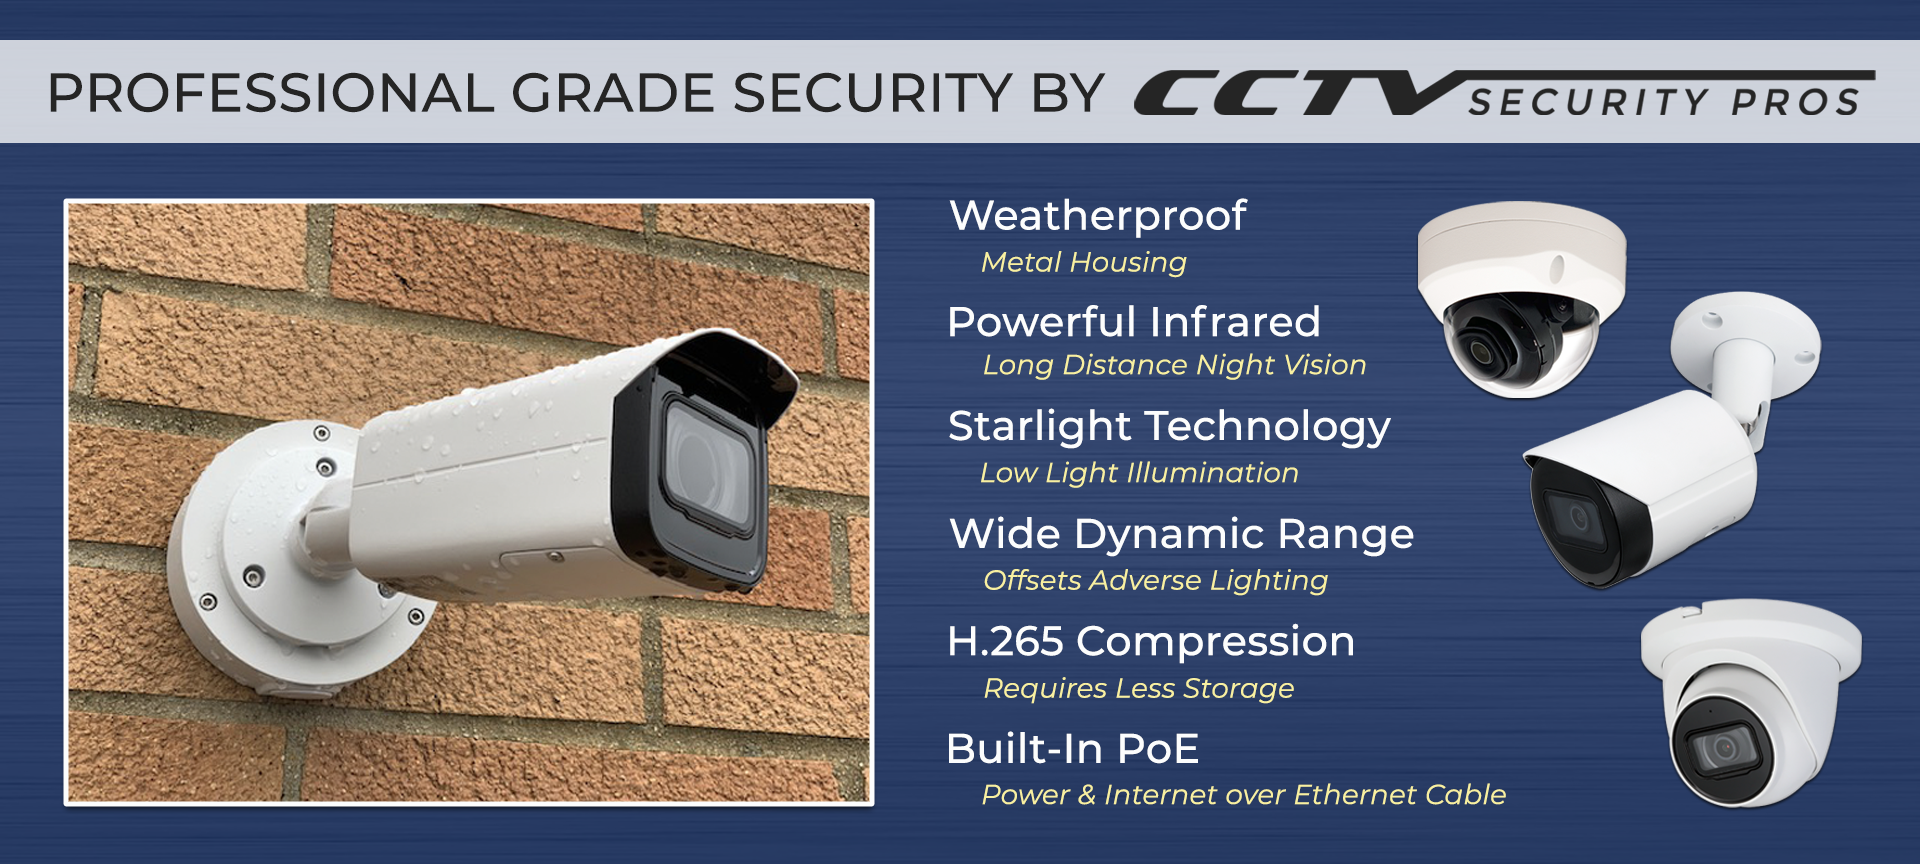 Professional Grade Security camera by CCTV security pros